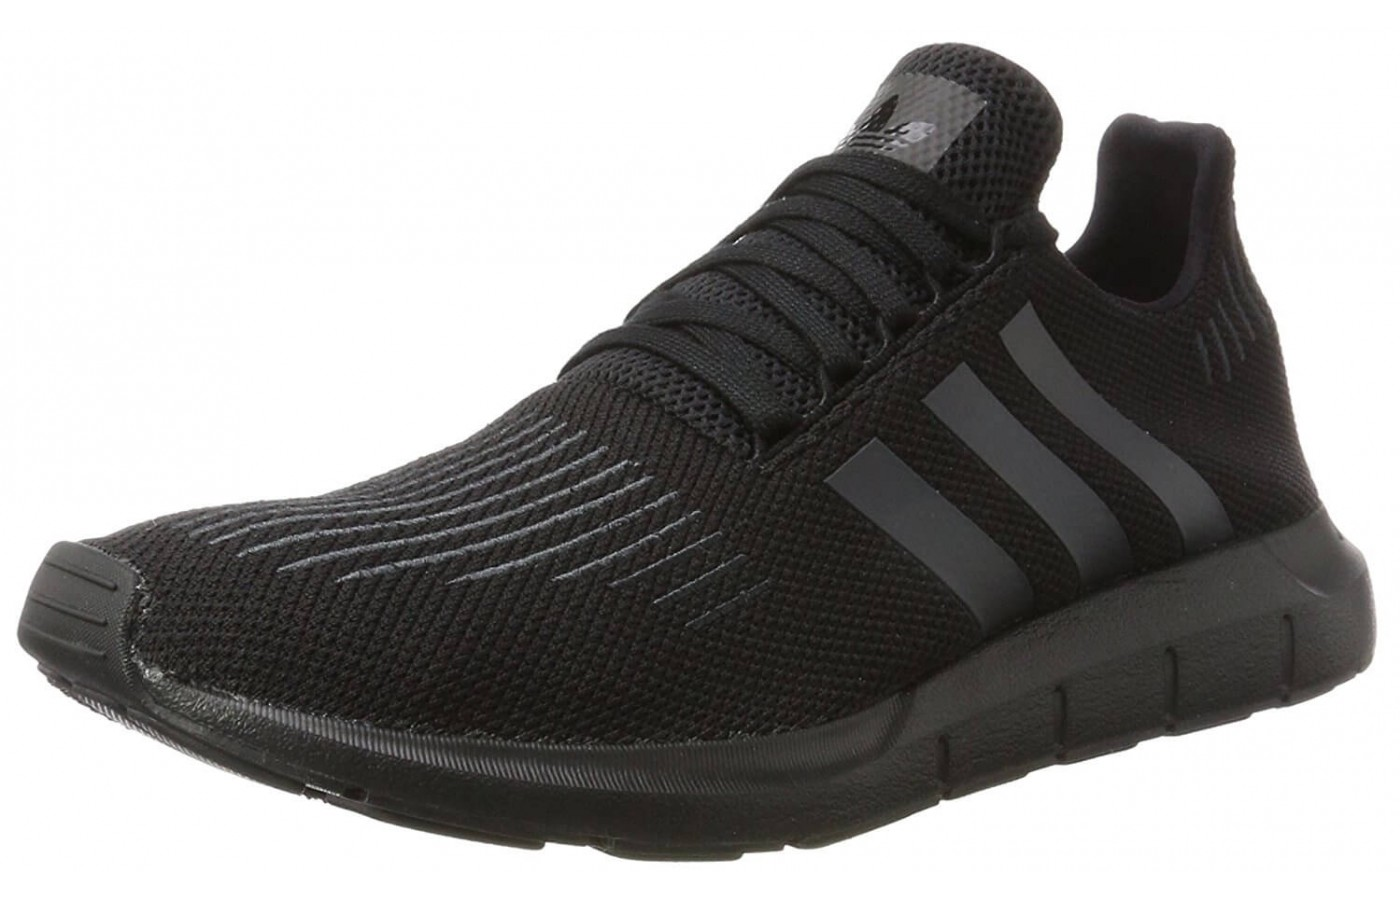 The Adidas Swiftrun Primeknit is a lightweight runner with a radical new  design philosophy. 401c2ddbf